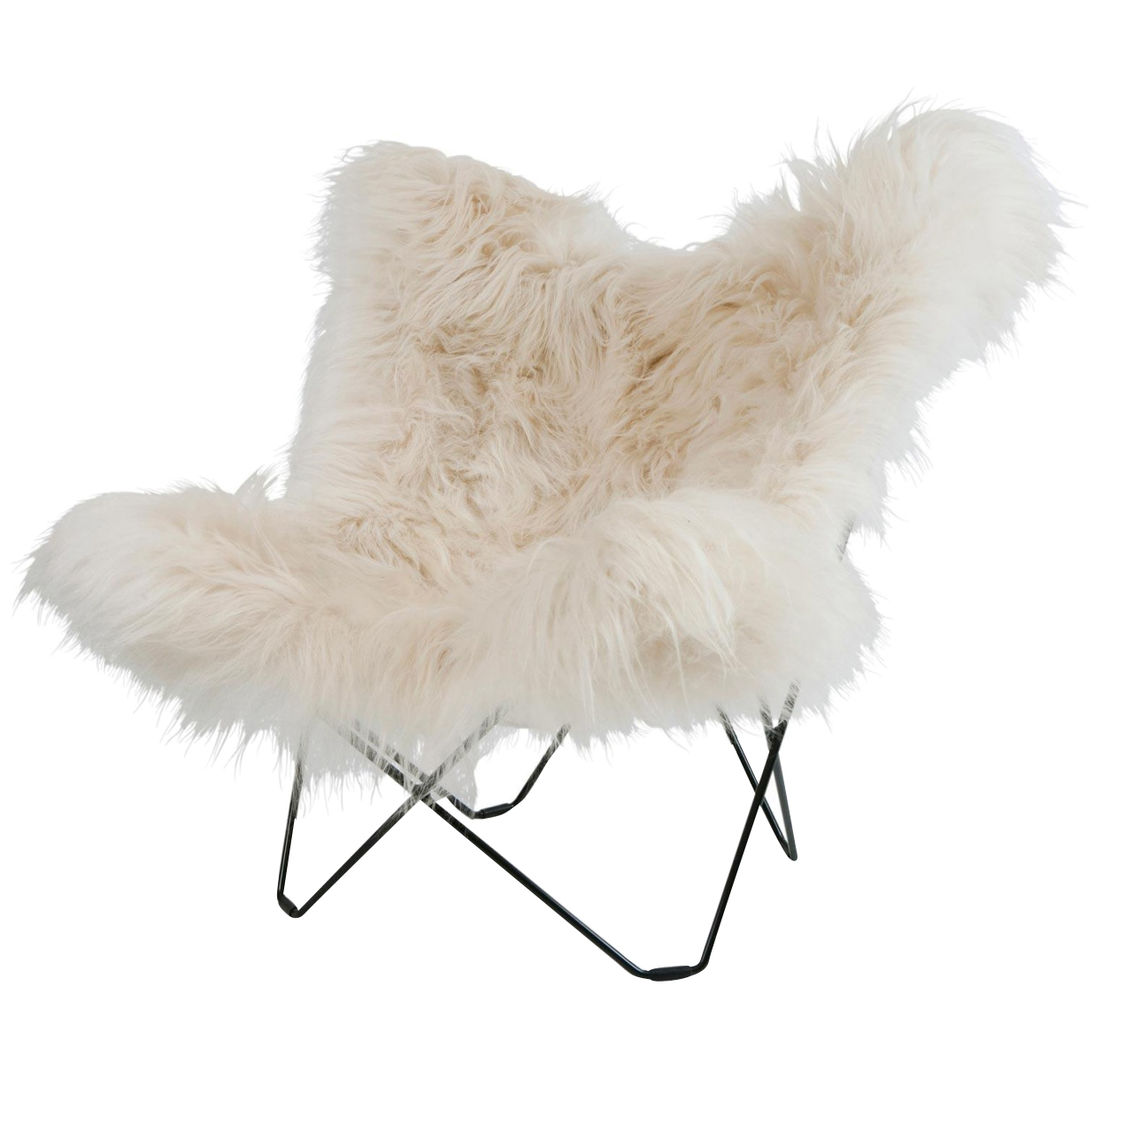 Fur Butterfly Chair Iceland Mariposa Butterfly Chair Cuero Ambientedirect